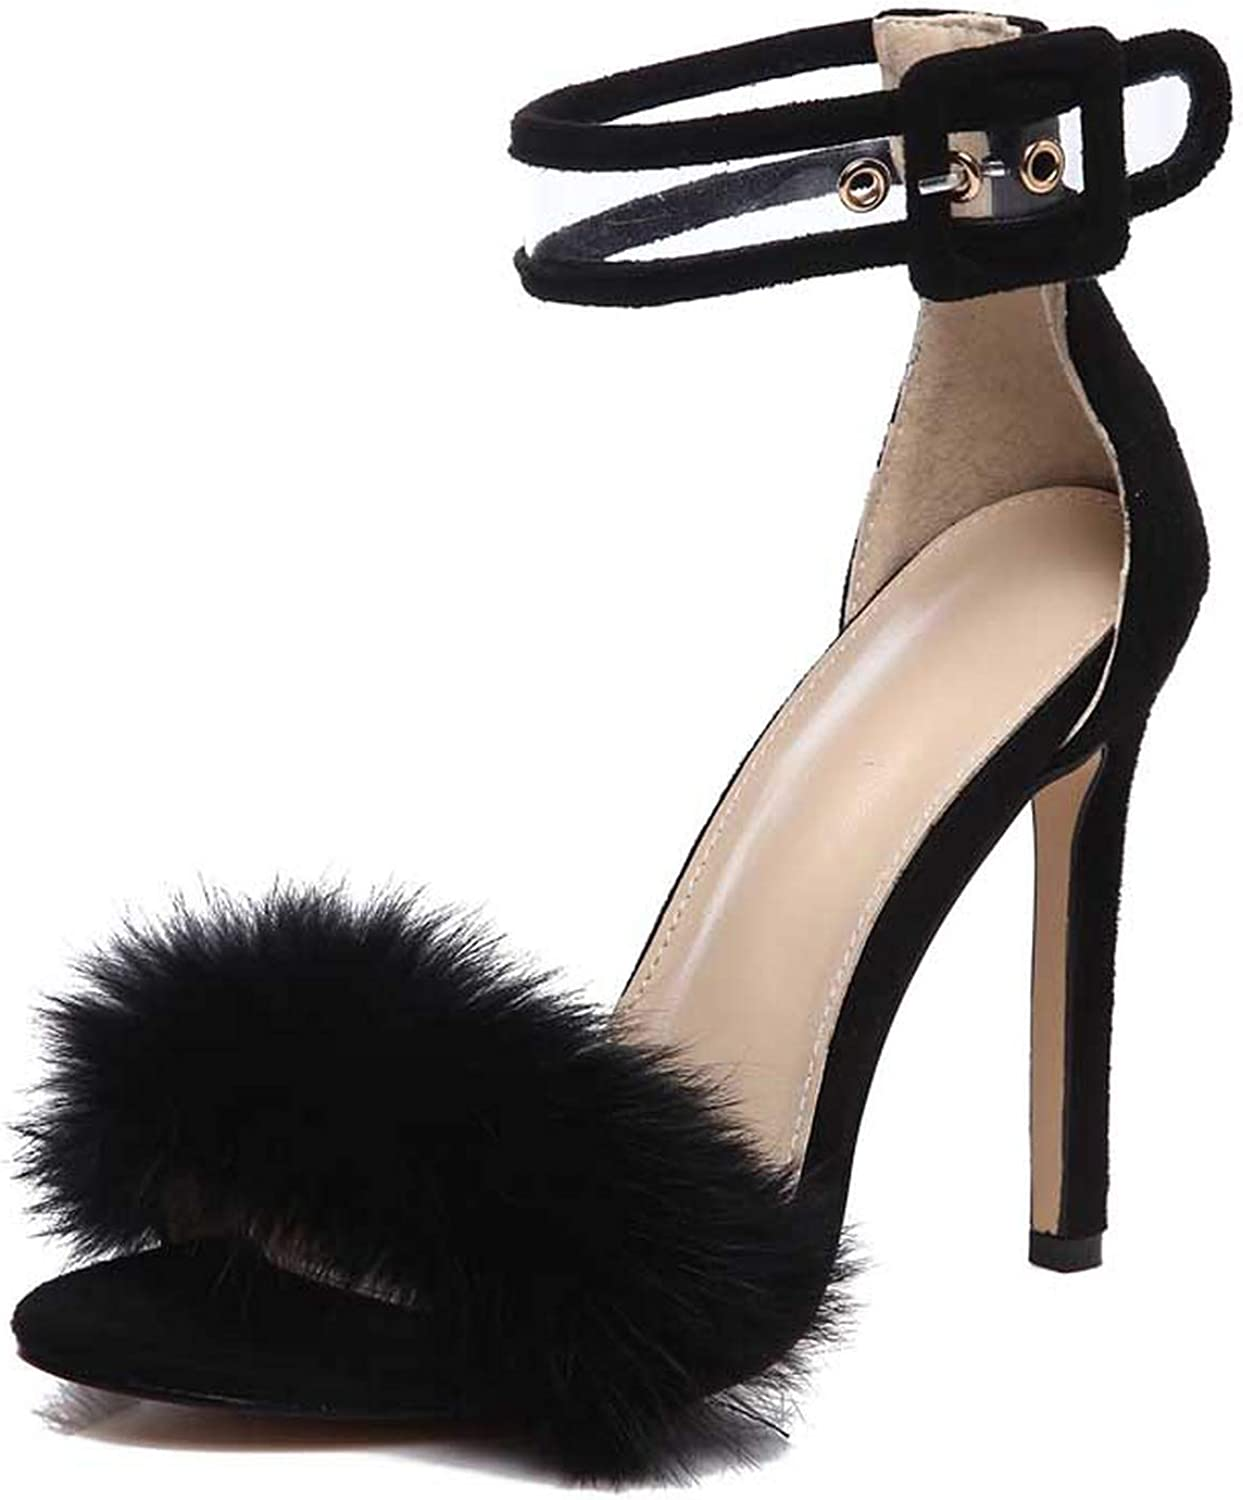 Ches Women Summer High Heel Sandals Leopard Fur Square High Heel shoes Woman Ankle Strap Buckle Sandal Size 35-40